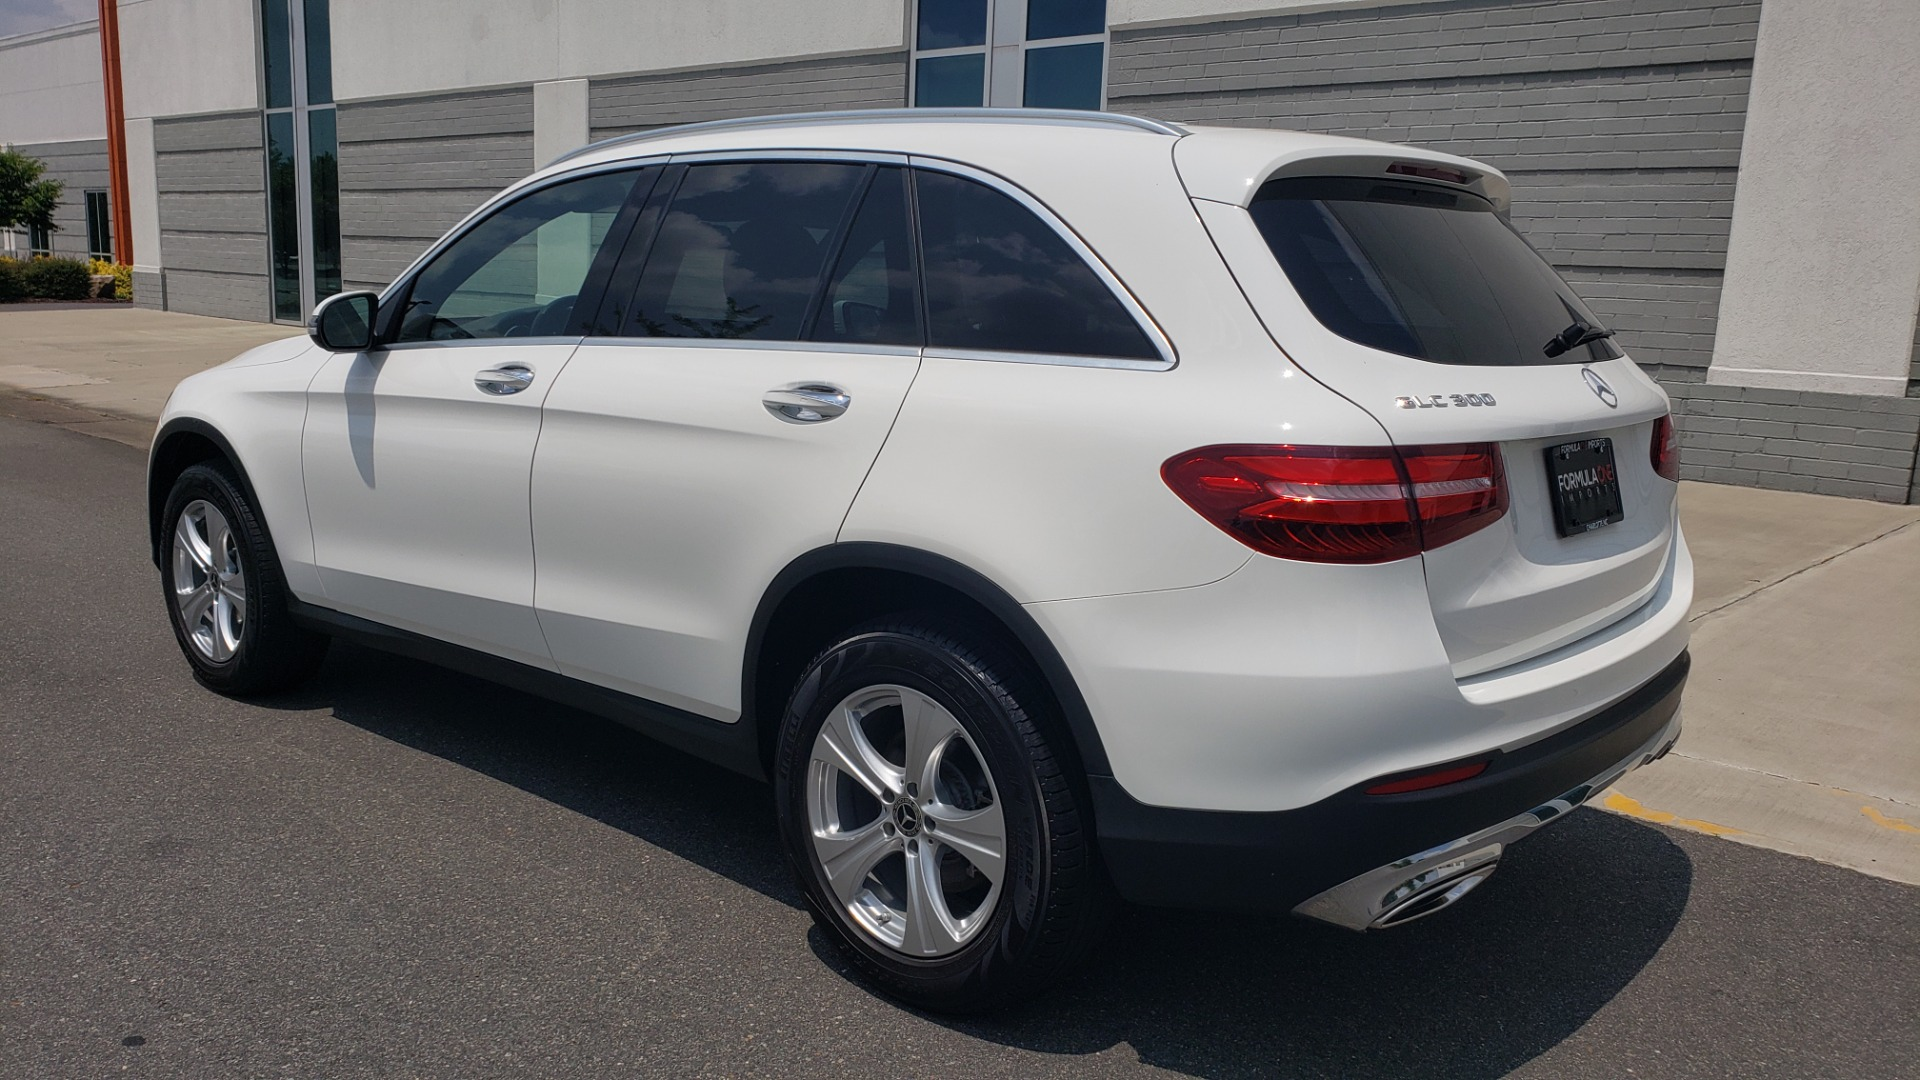 Used 2018 Mercedes-Benz GLC 300 PREMIUM 4MATIC / PANO-ROOF / BURMESTER / REARVIEW for sale $36,295 at Formula Imports in Charlotte NC 28227 6